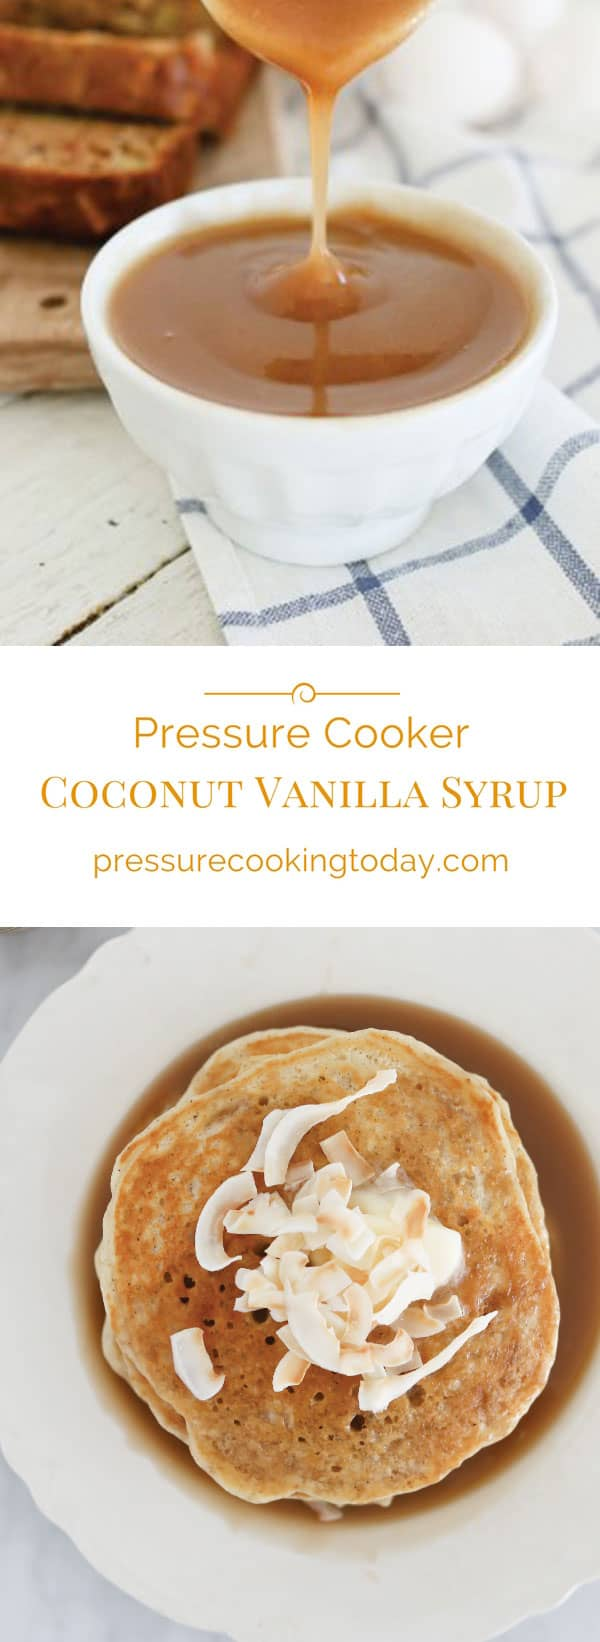 Coconut Vanilla Syrup photo collage